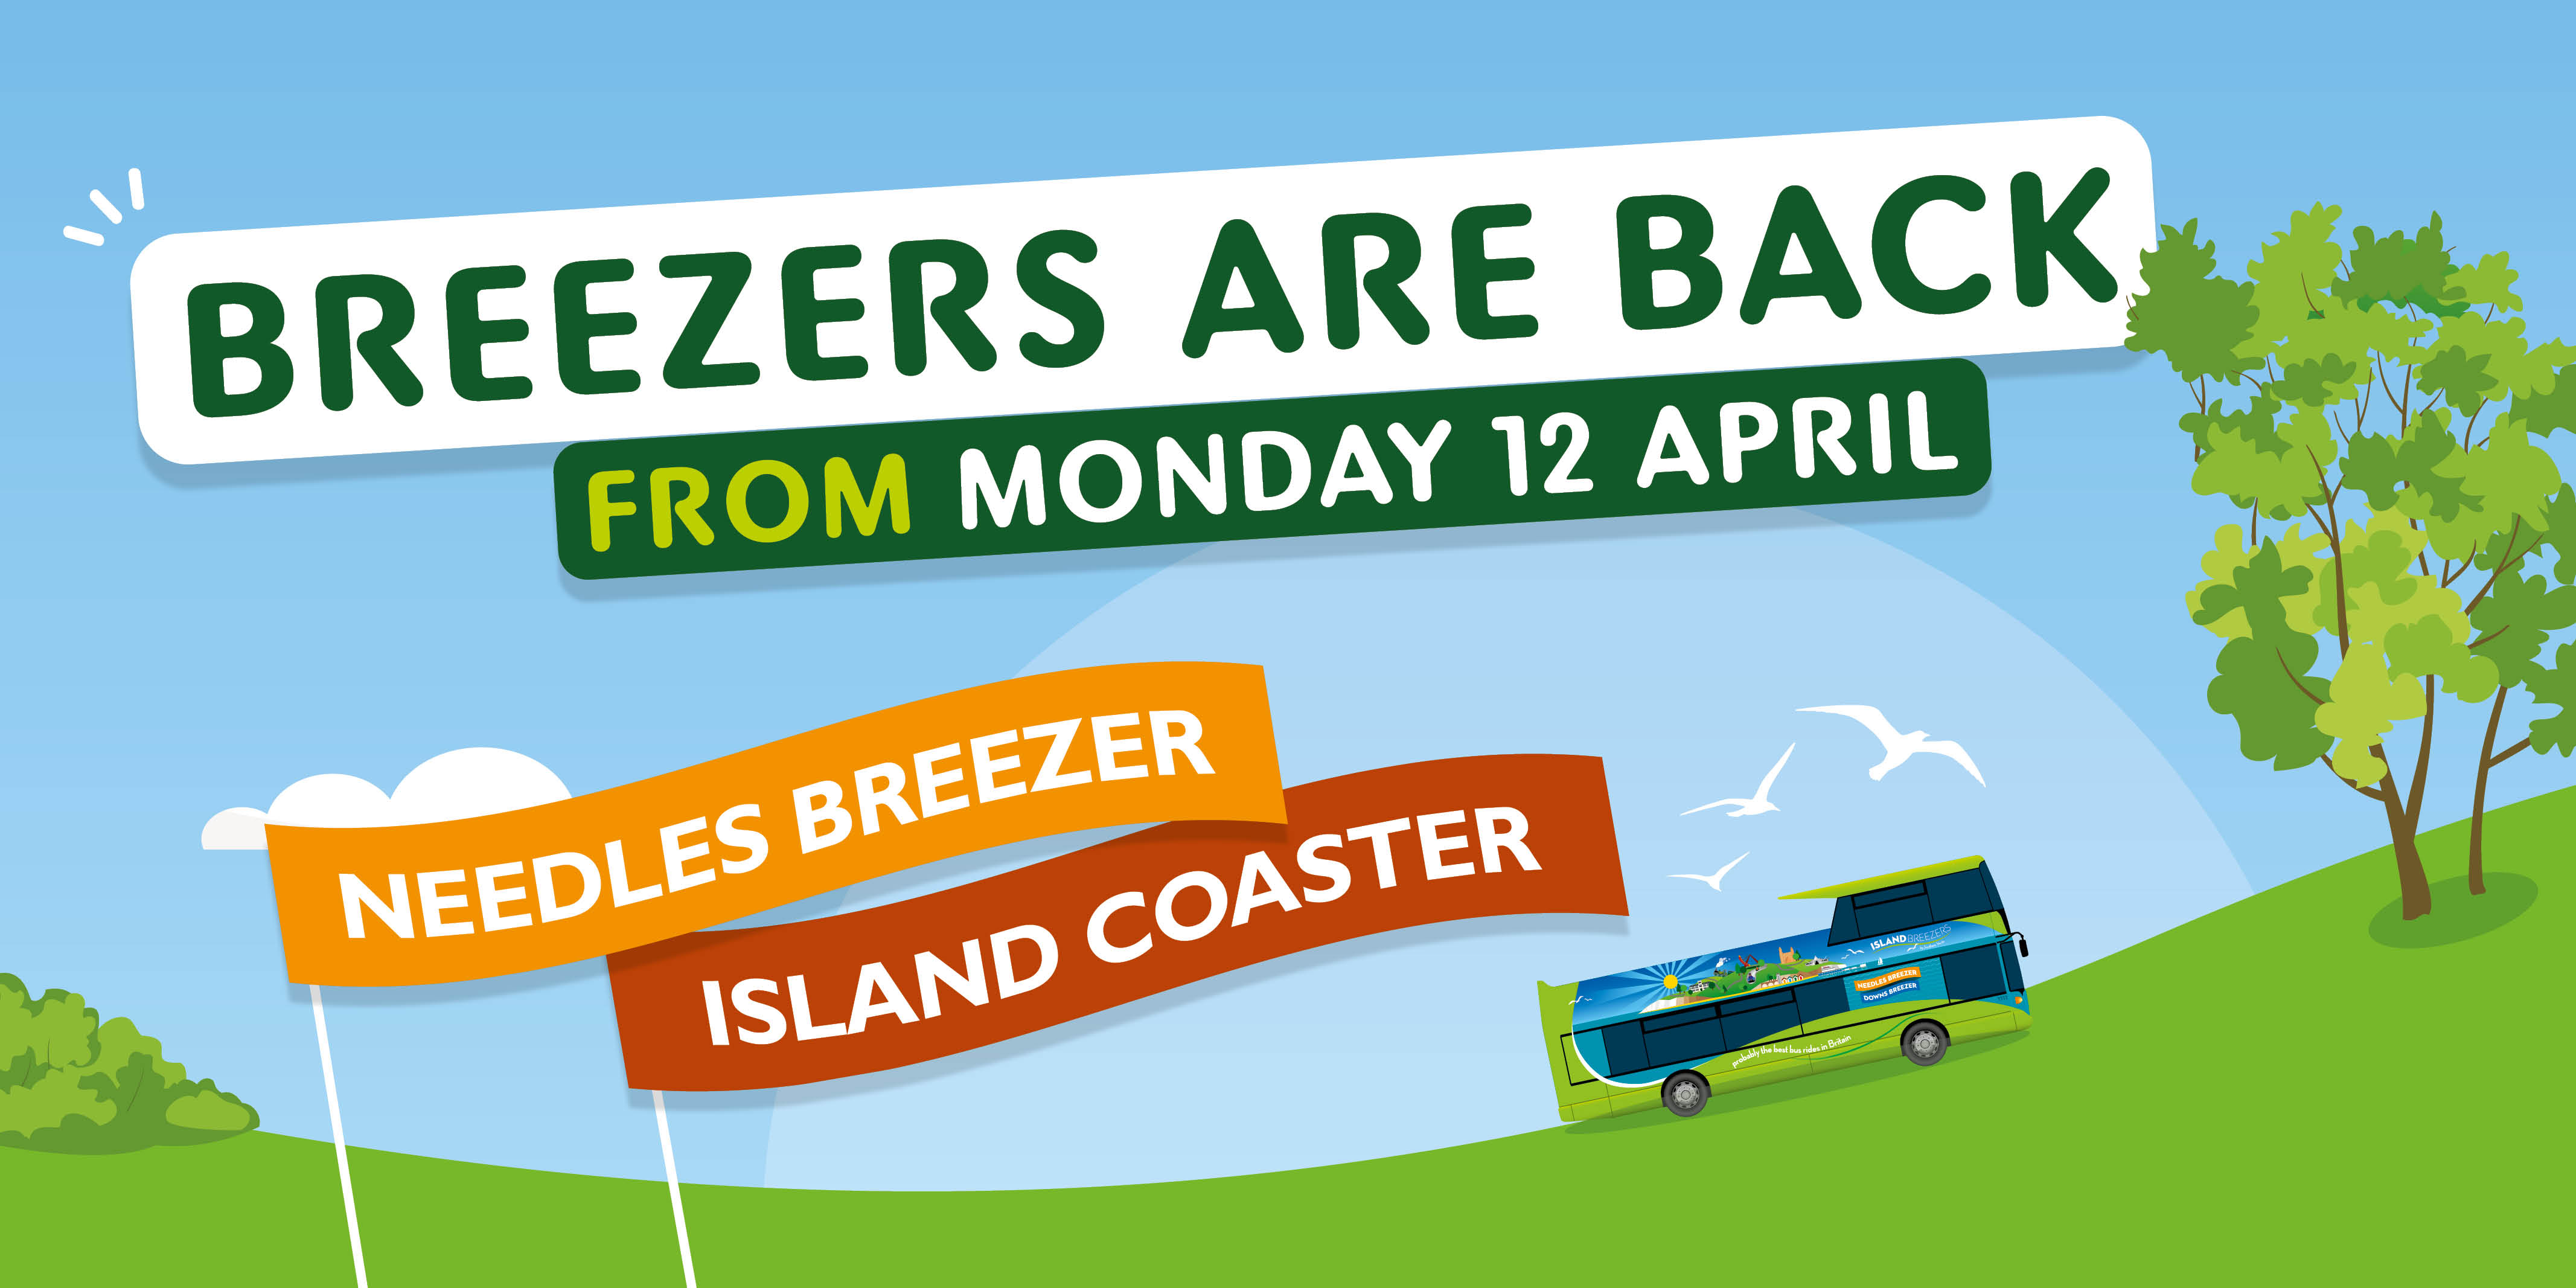 breezers are back from monday 12 april